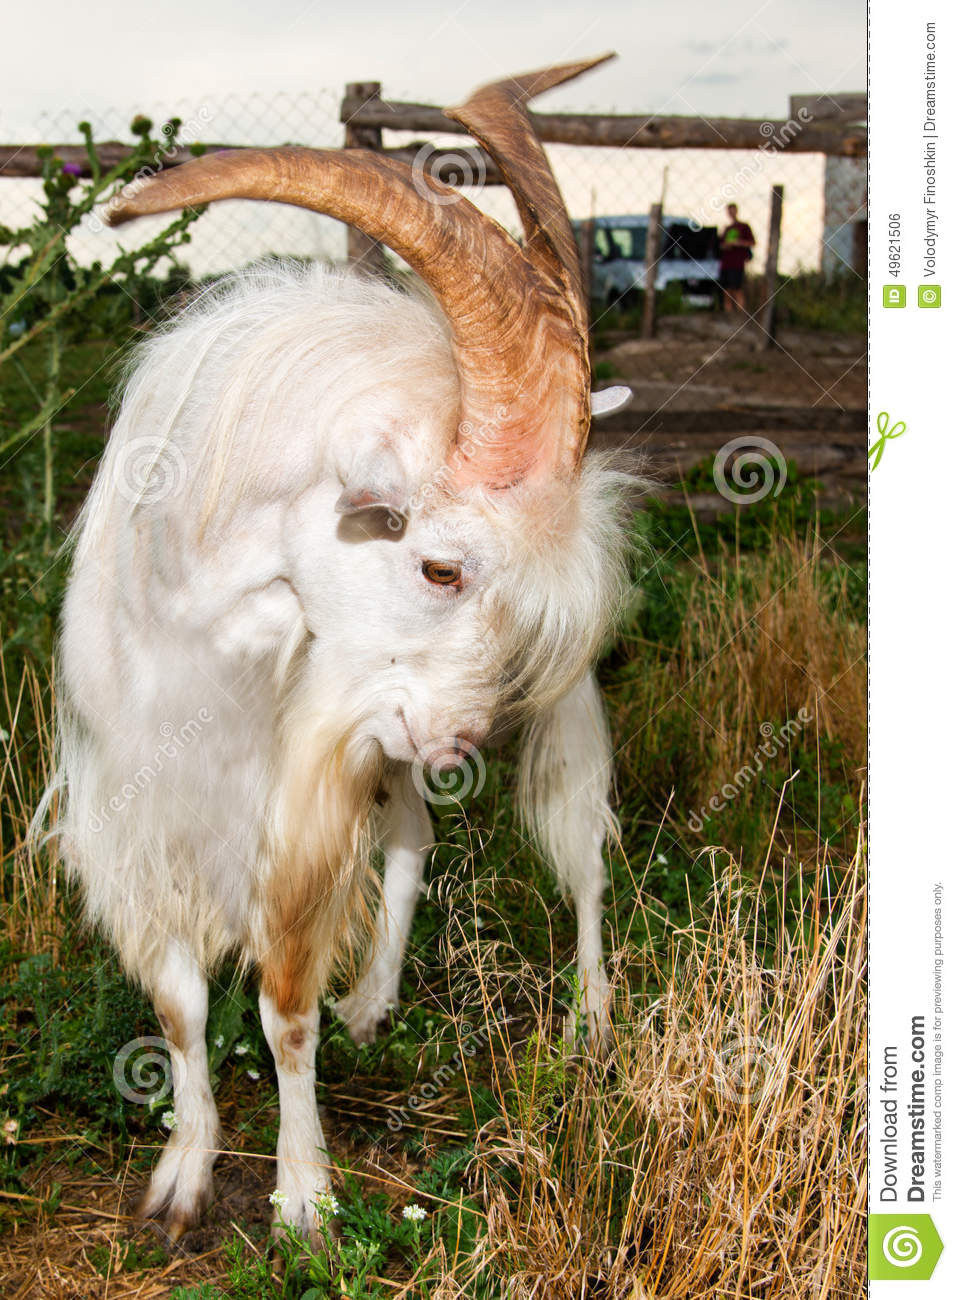 The Angry He-goat. Stock Photo - Image: 49621506